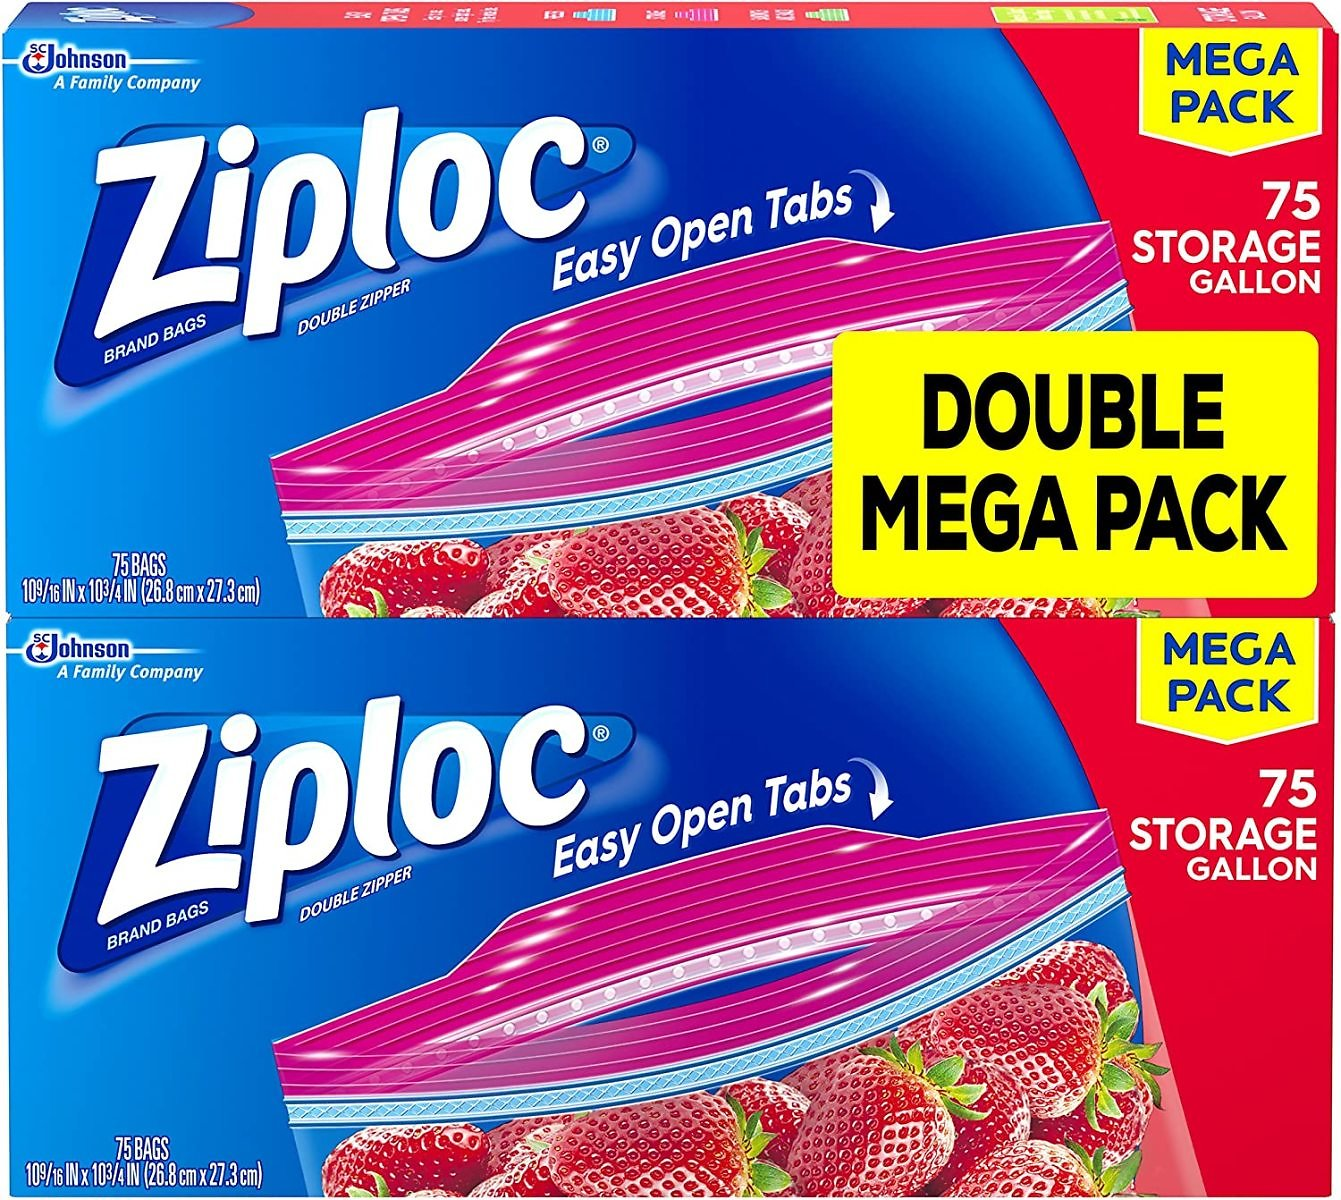 Ziploc Storage Bags, For Food, Sandwich, Organization and More, Smart Zipper Plus Seal, Gallon, 75 Count, Pack of 2, (150 Total